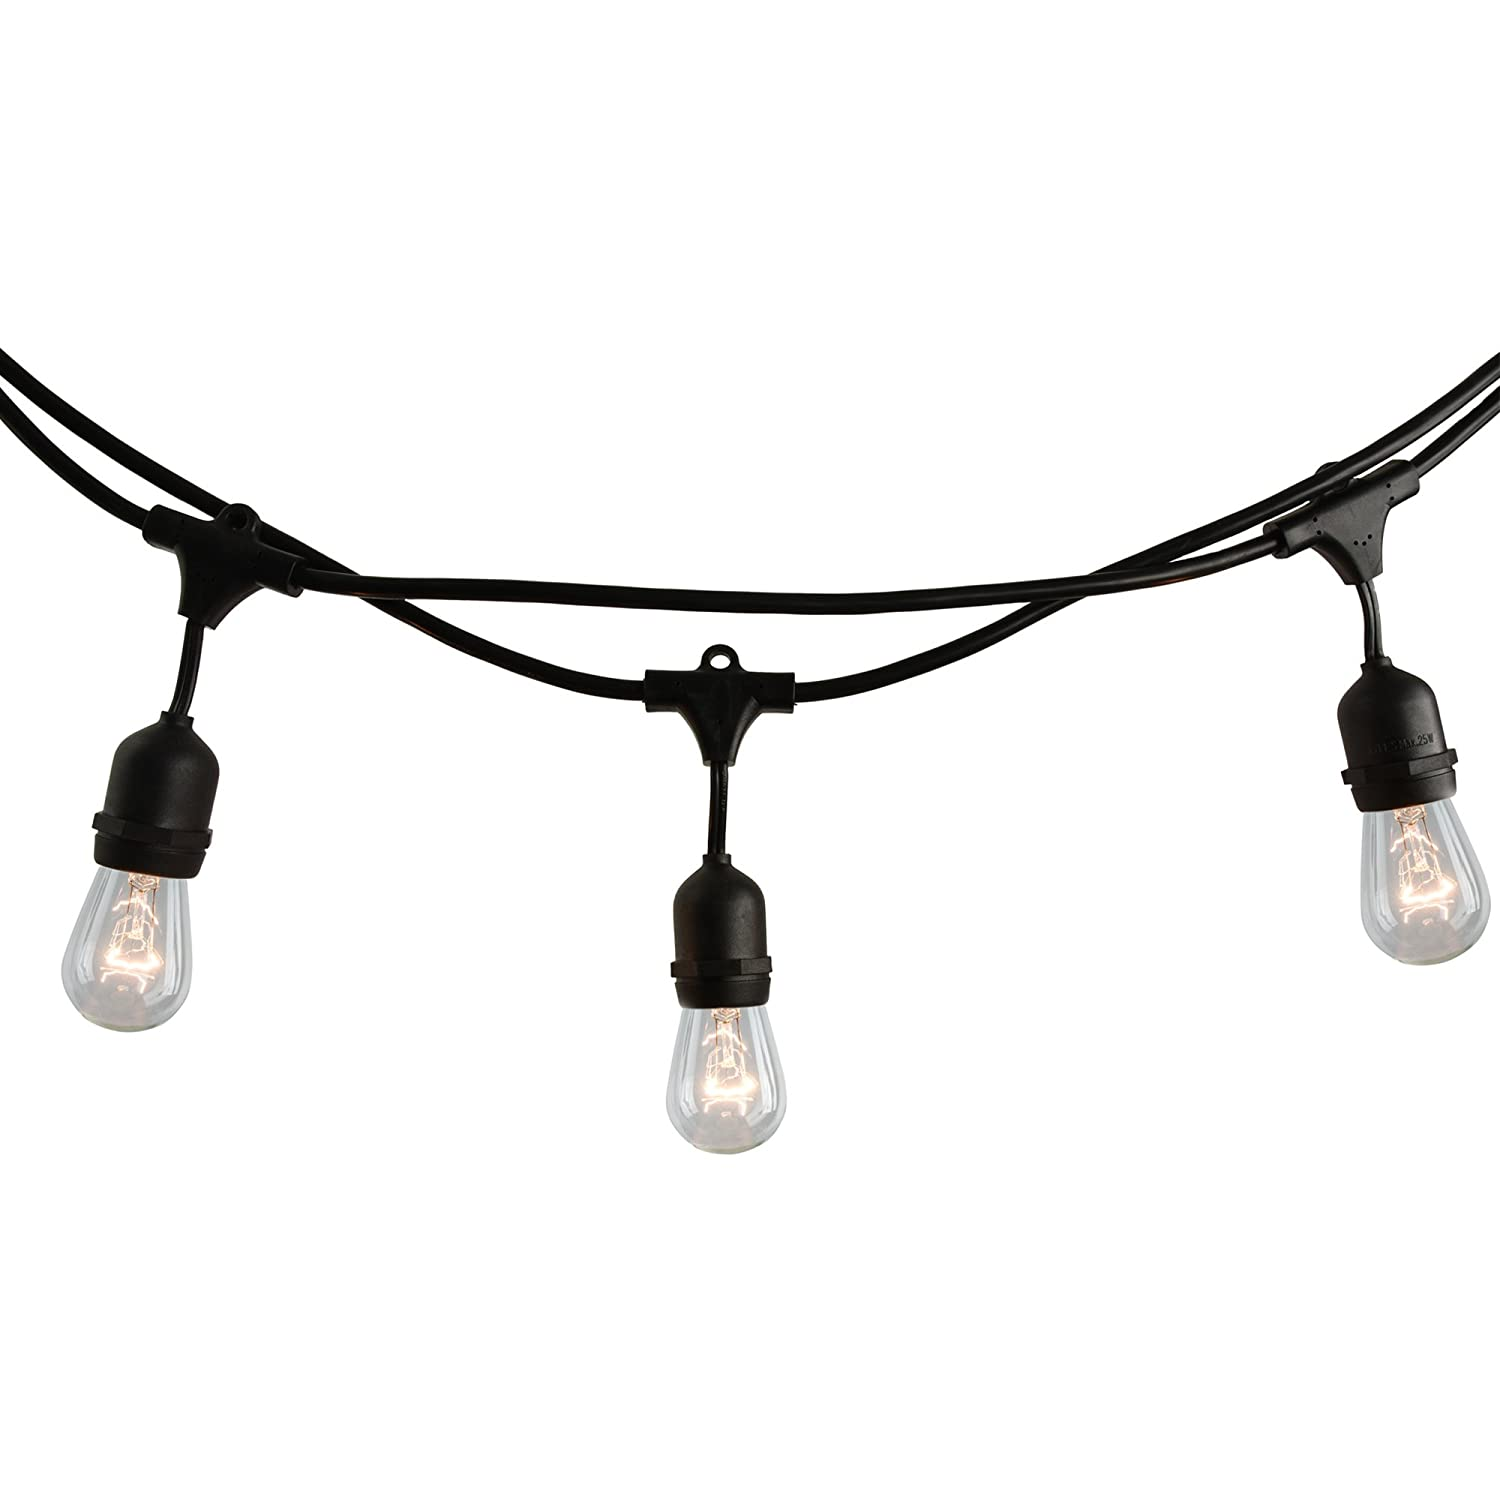 reputable site 86a12 1f729 Bulbrite 14 ft, 10-Socket Decorative Kit with Clear Incandescent  STRING10/E26/BLACK-S14KT Indoor and Outdoor String Lights, 1 Item, Black